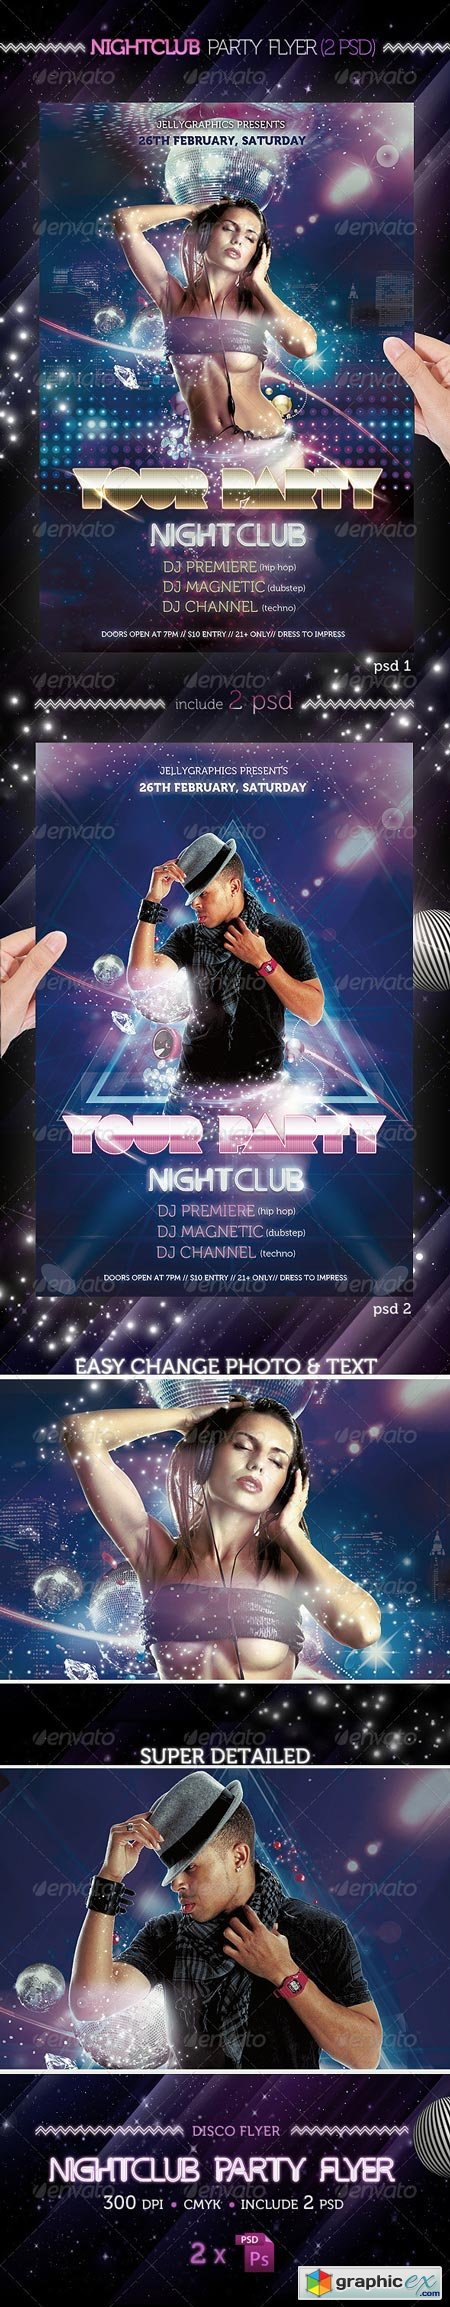 Nightclub Party Flyer Template 1665712